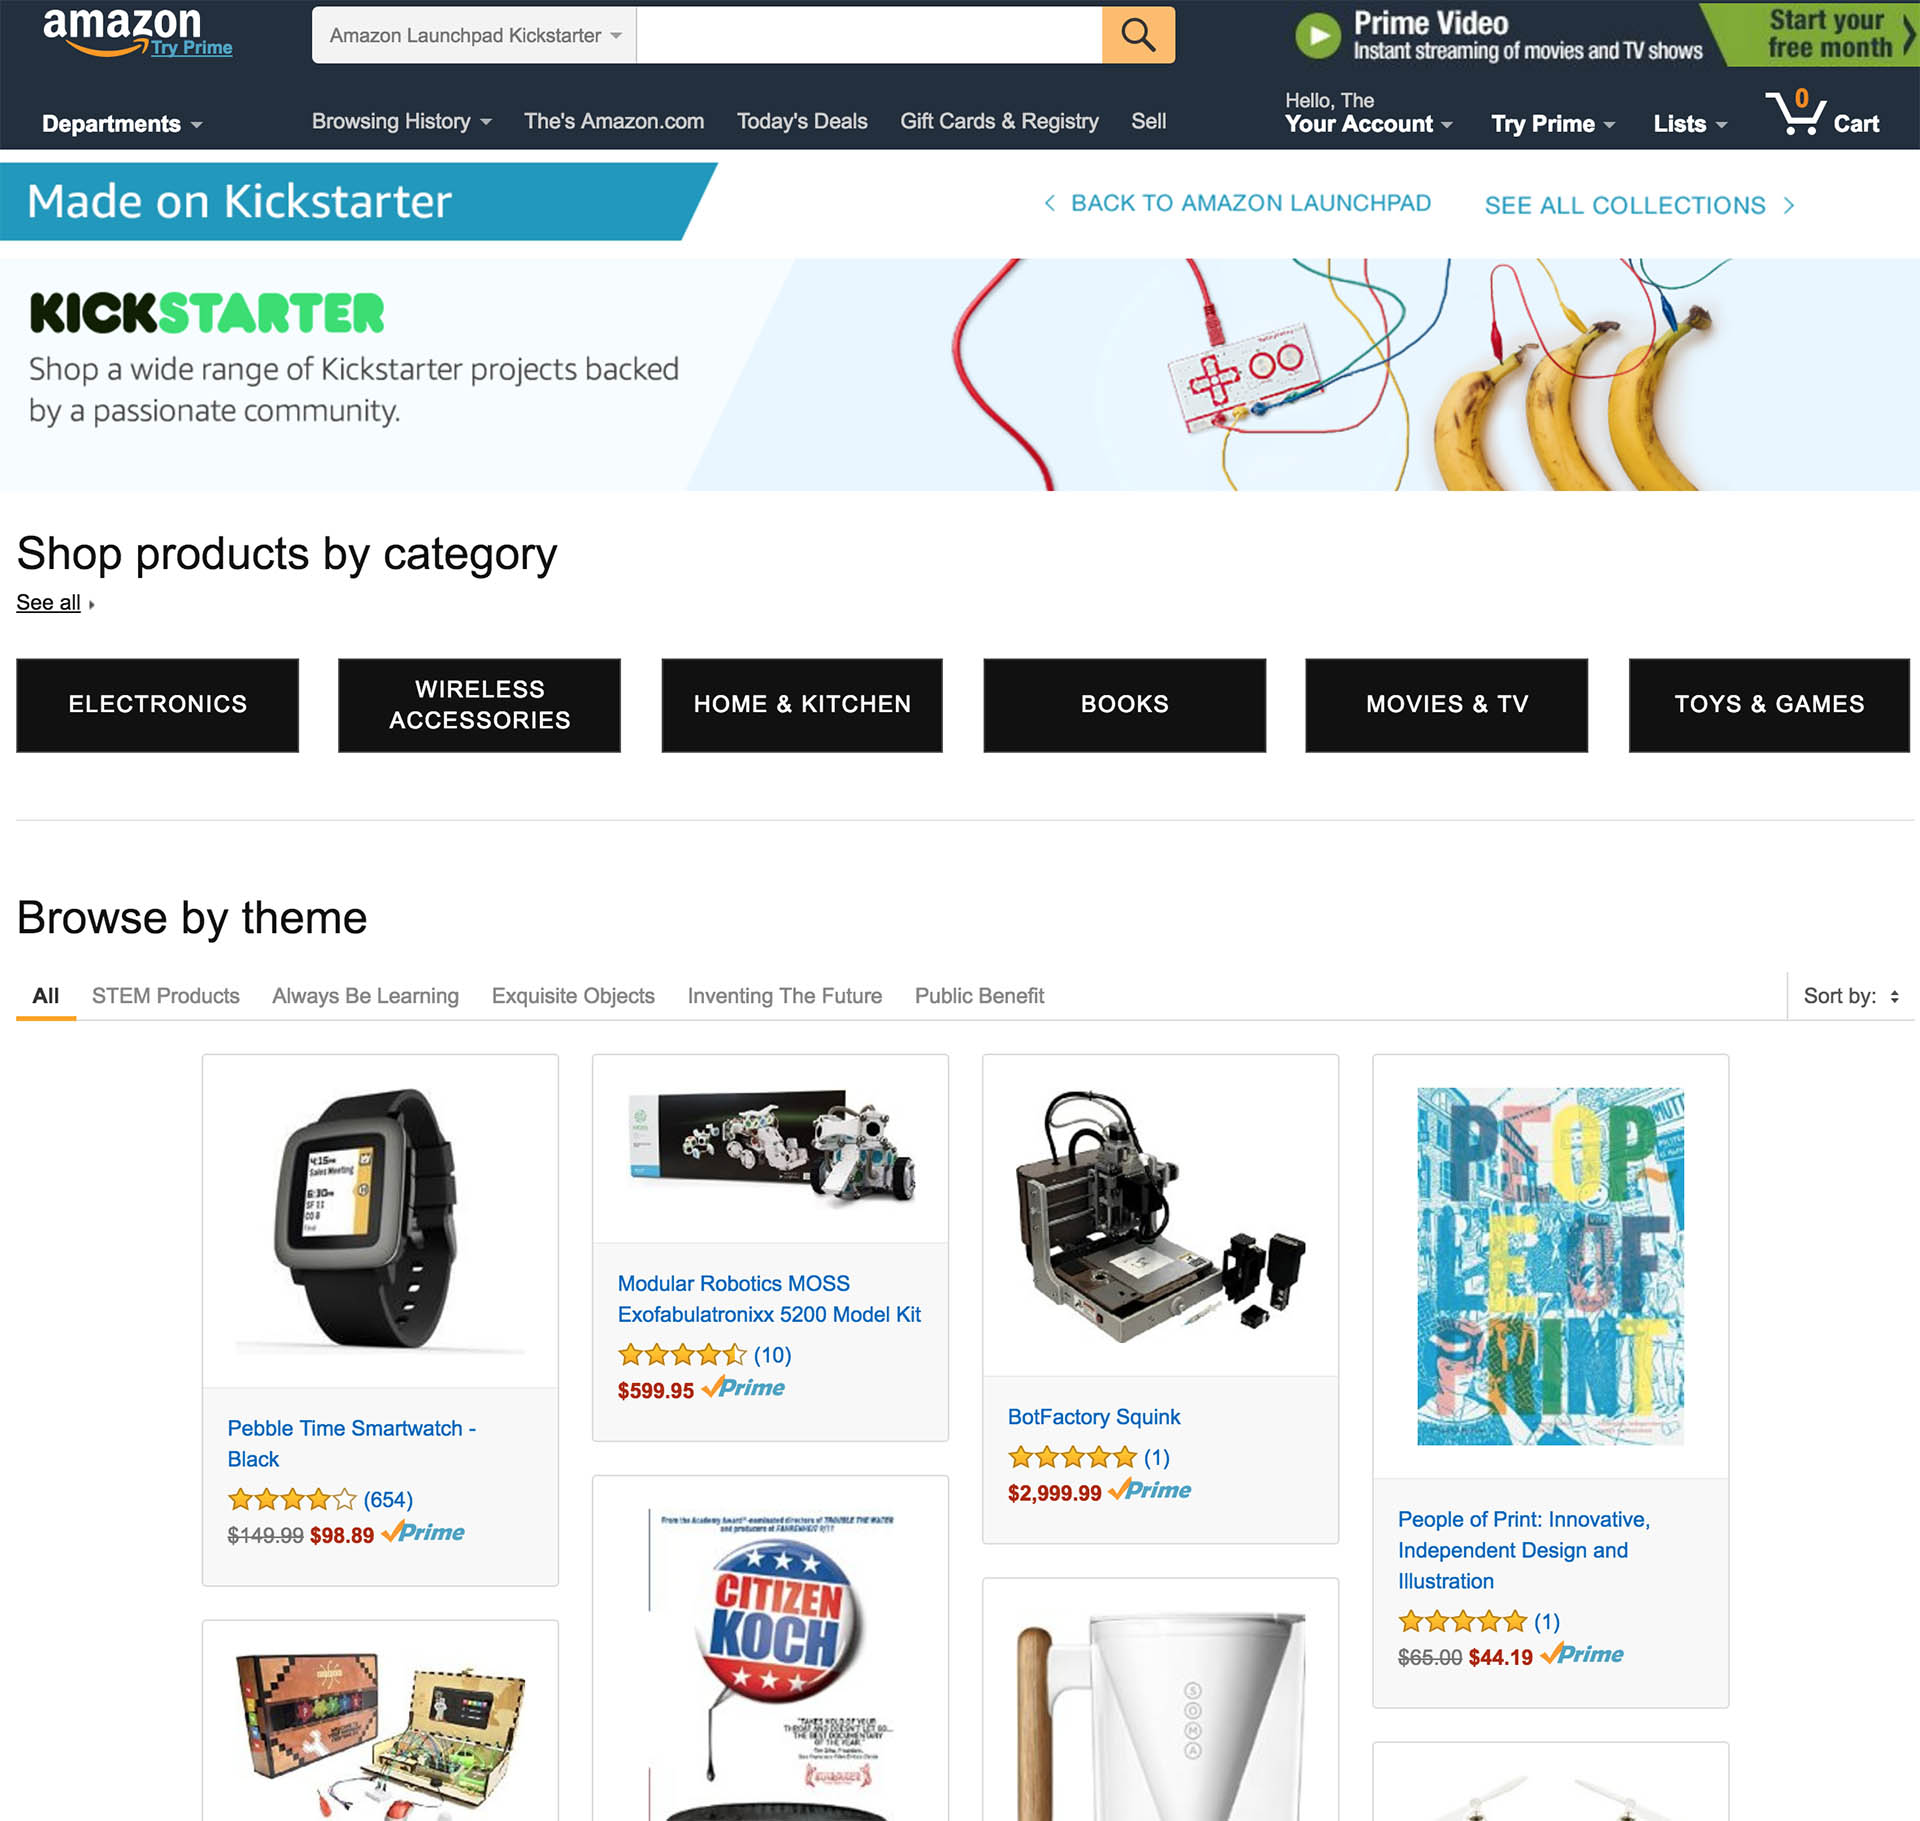 Amazon Launches a Store for Kickstarter Products